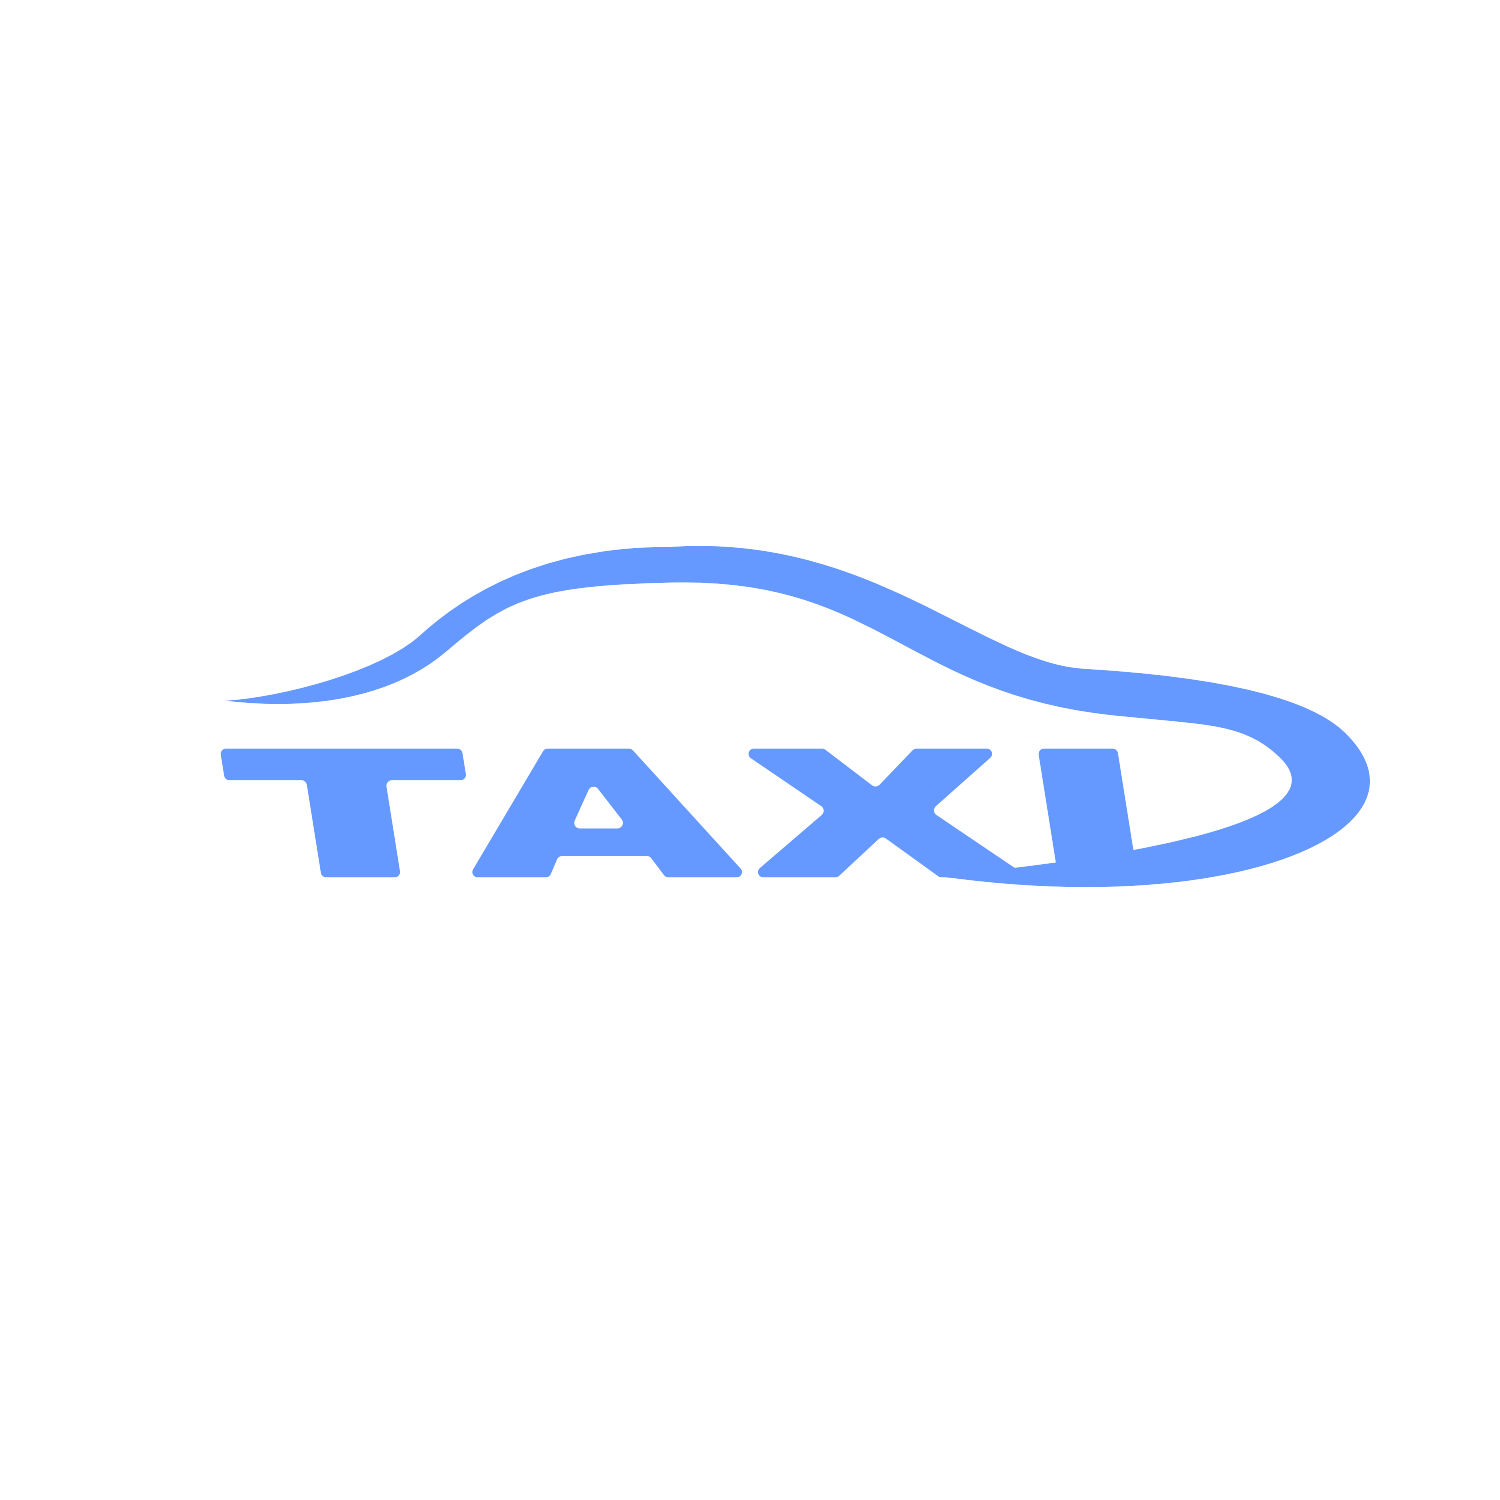 Vector for free use: Taxi logo